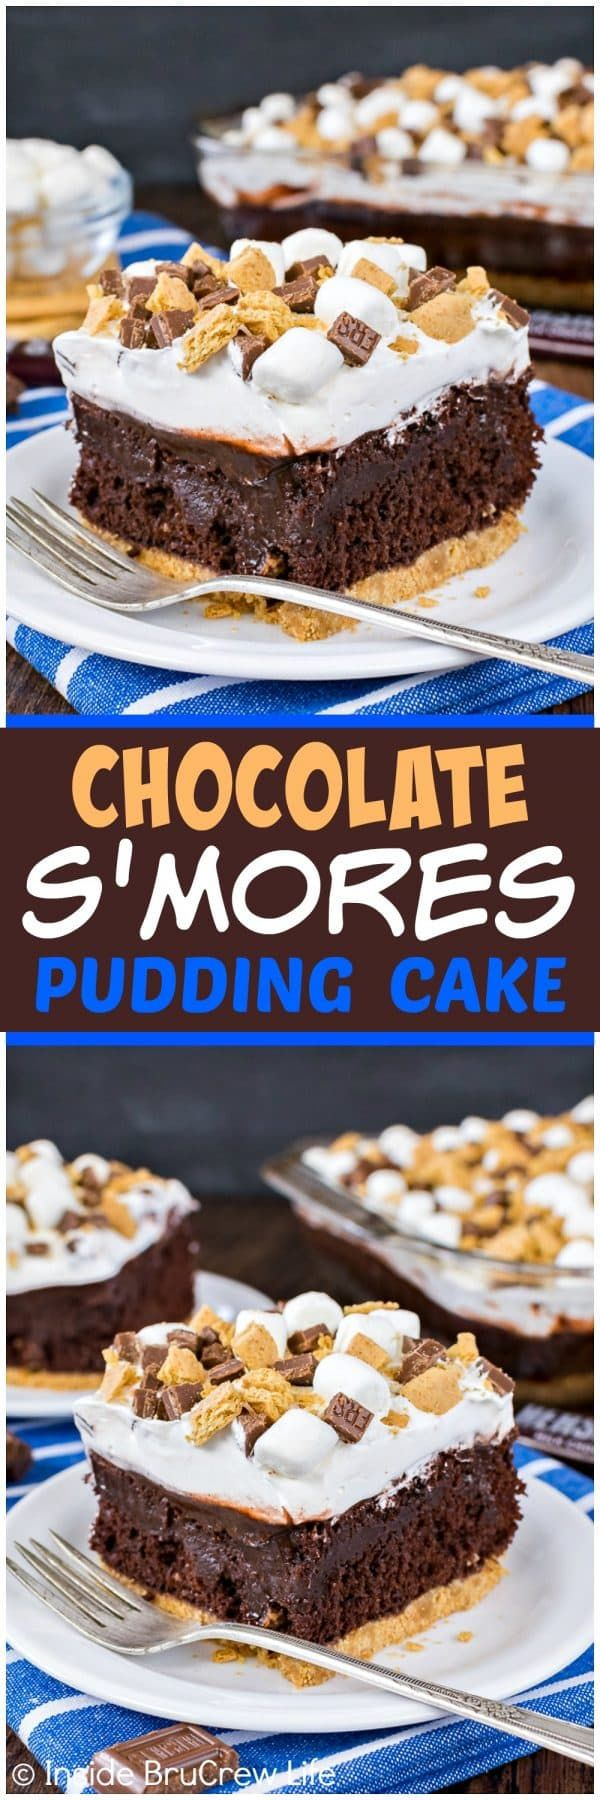 Chocolate S'mores Pudding Cake - chocolate pudding and a marshmallow topping make this gooey cake perfect for summer!  Easy and delicious recipe for picnics and parties! (Chocolate Chip Marshmallow)